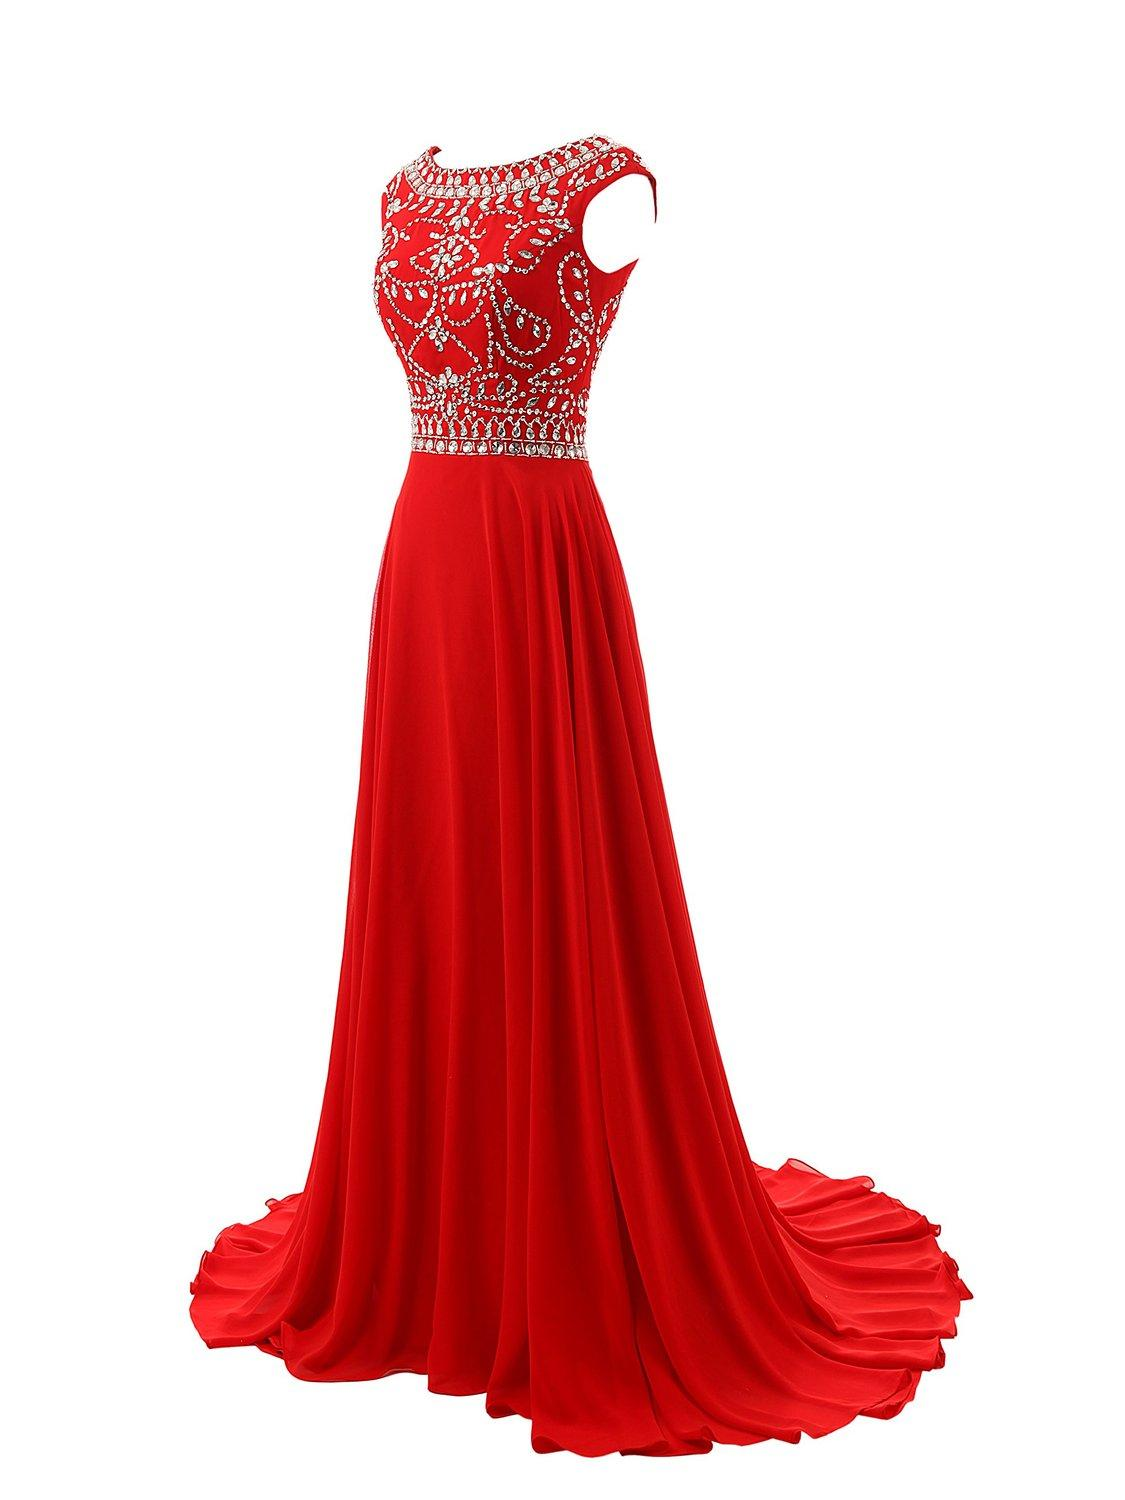 Red Prom Dresses,Elegant Evening Dresses,Long Formal Gowns,Beading Party Dresses,Chiffon Pageant Formal Dress,Cap Sleeves Evening Gown